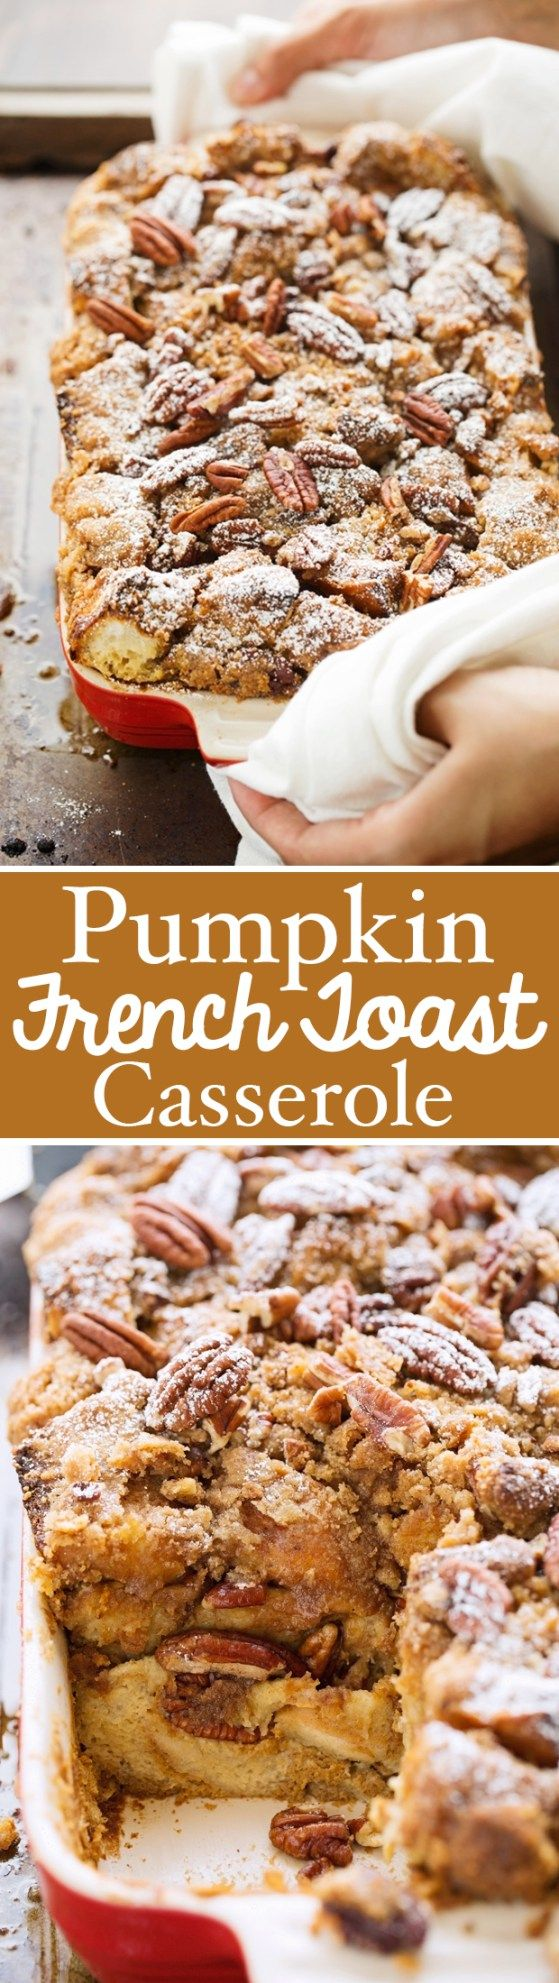 Pumpkin French Toast Casserole - This recipe is super friendly to make ahead of time and perfect for entertaining brunch guests of for Saturday morning breakfast! #pumpkinfrenchtoast #frenchtoastcasserole #frenchtoast   Littlespicejar.com